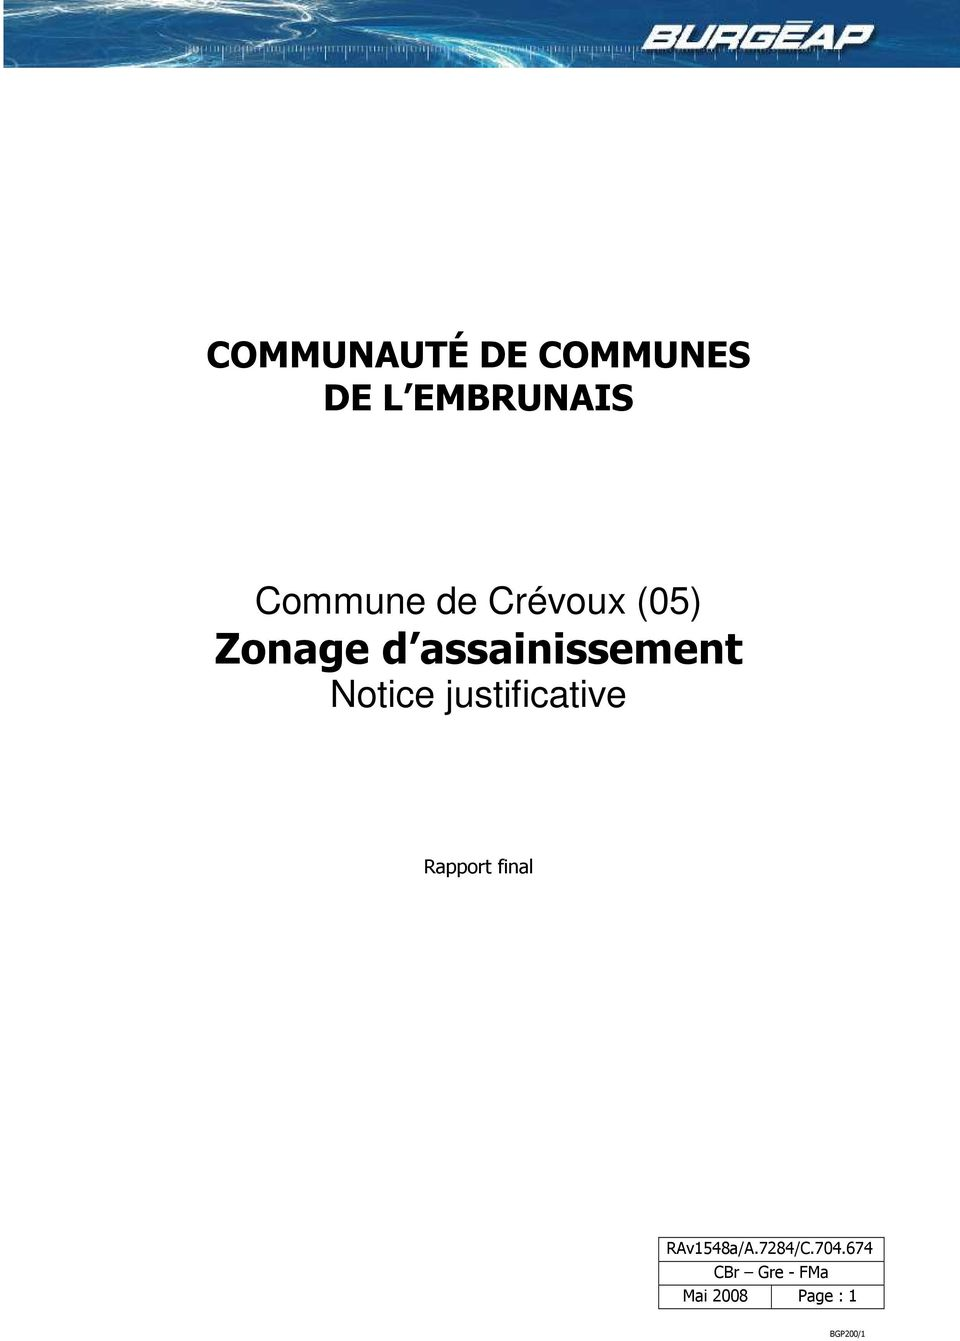 Zonage d assainissement Notice